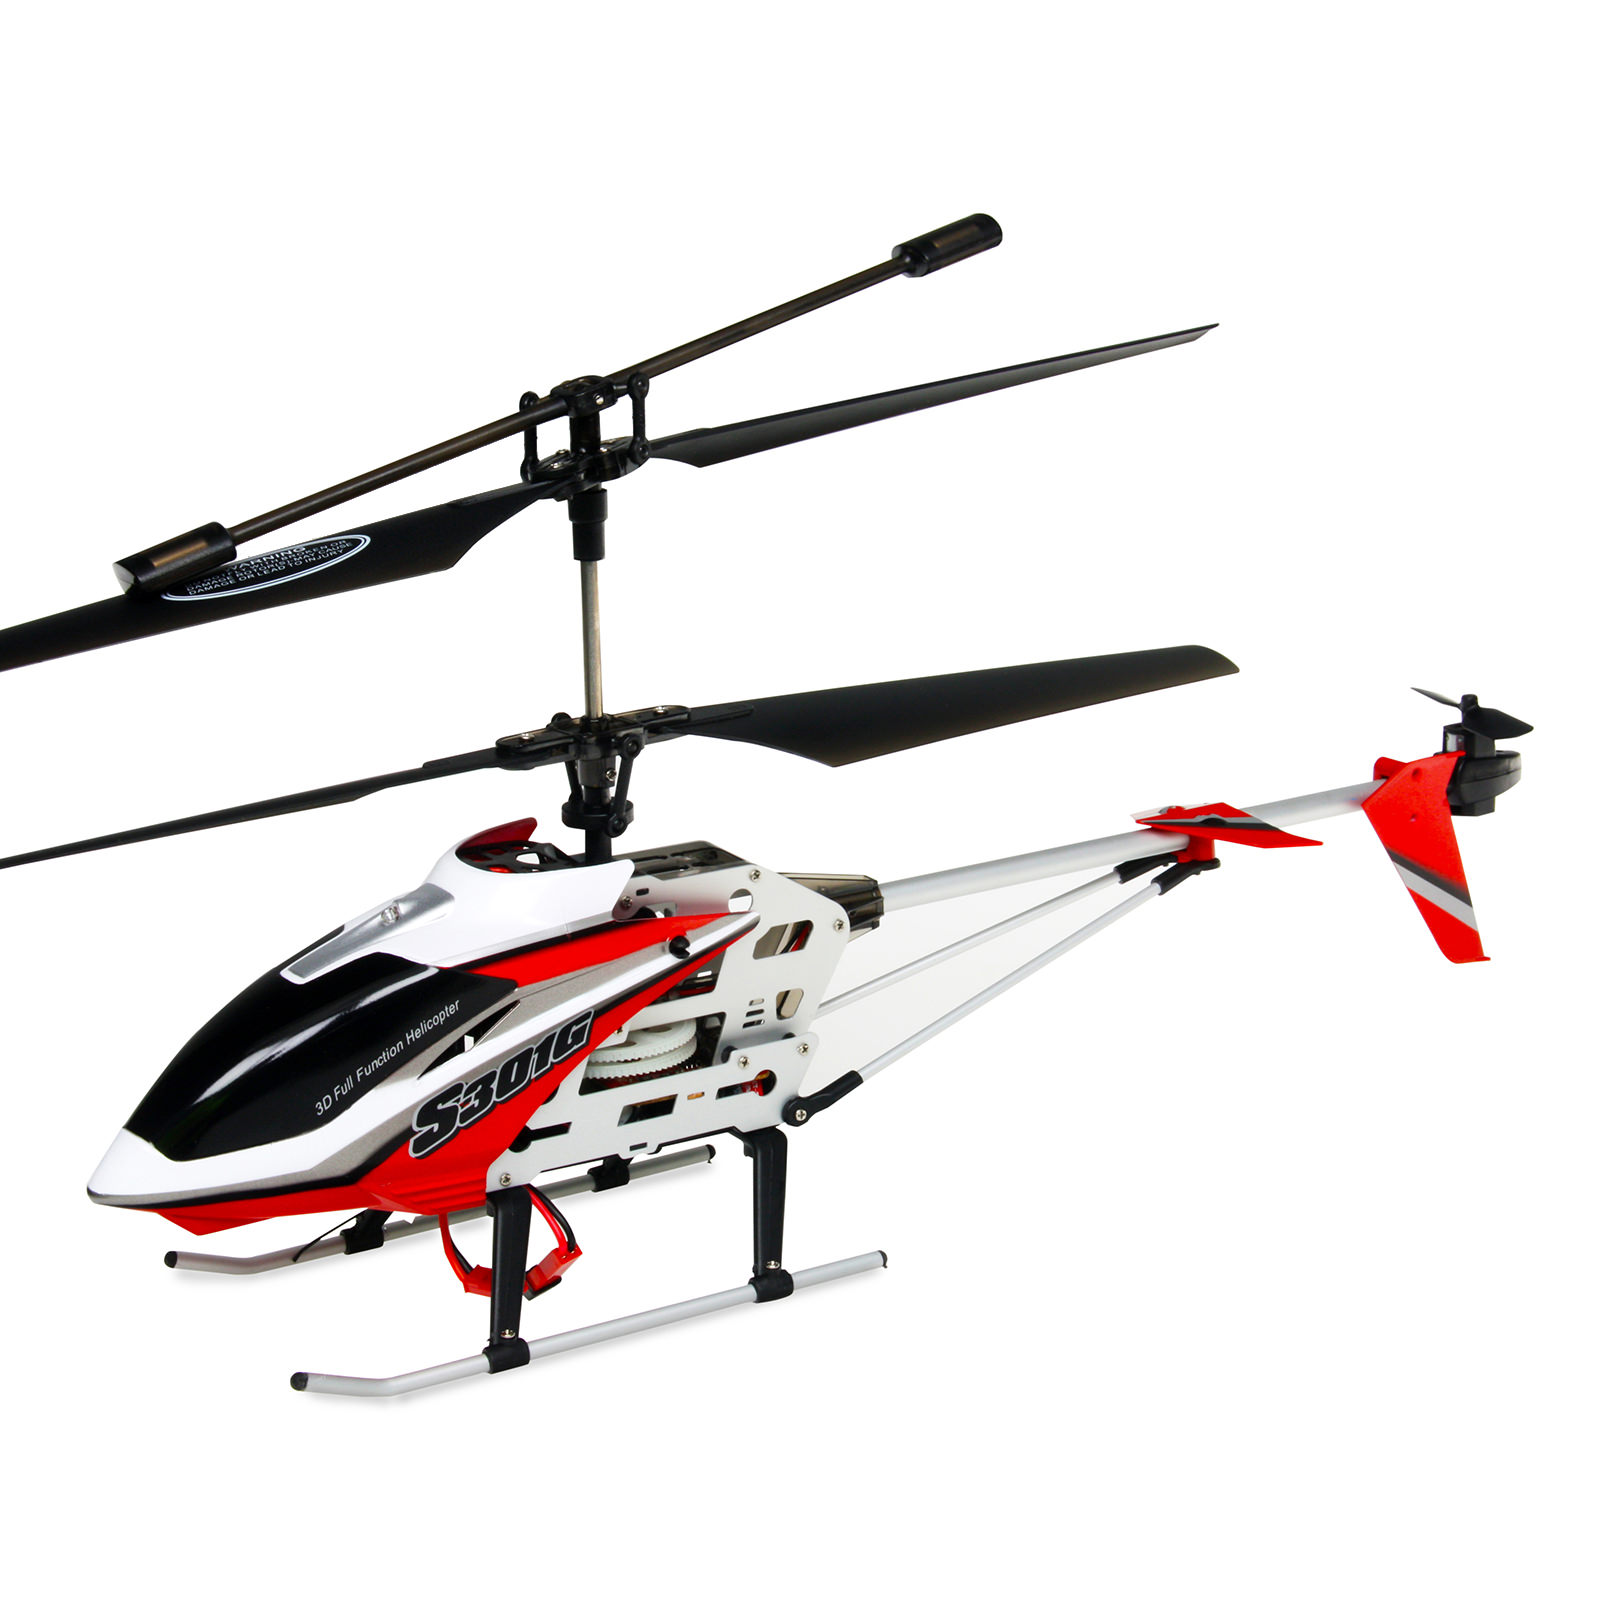 Syma s301g red rc helicopter at hobby warehouse for Helicoptere syma